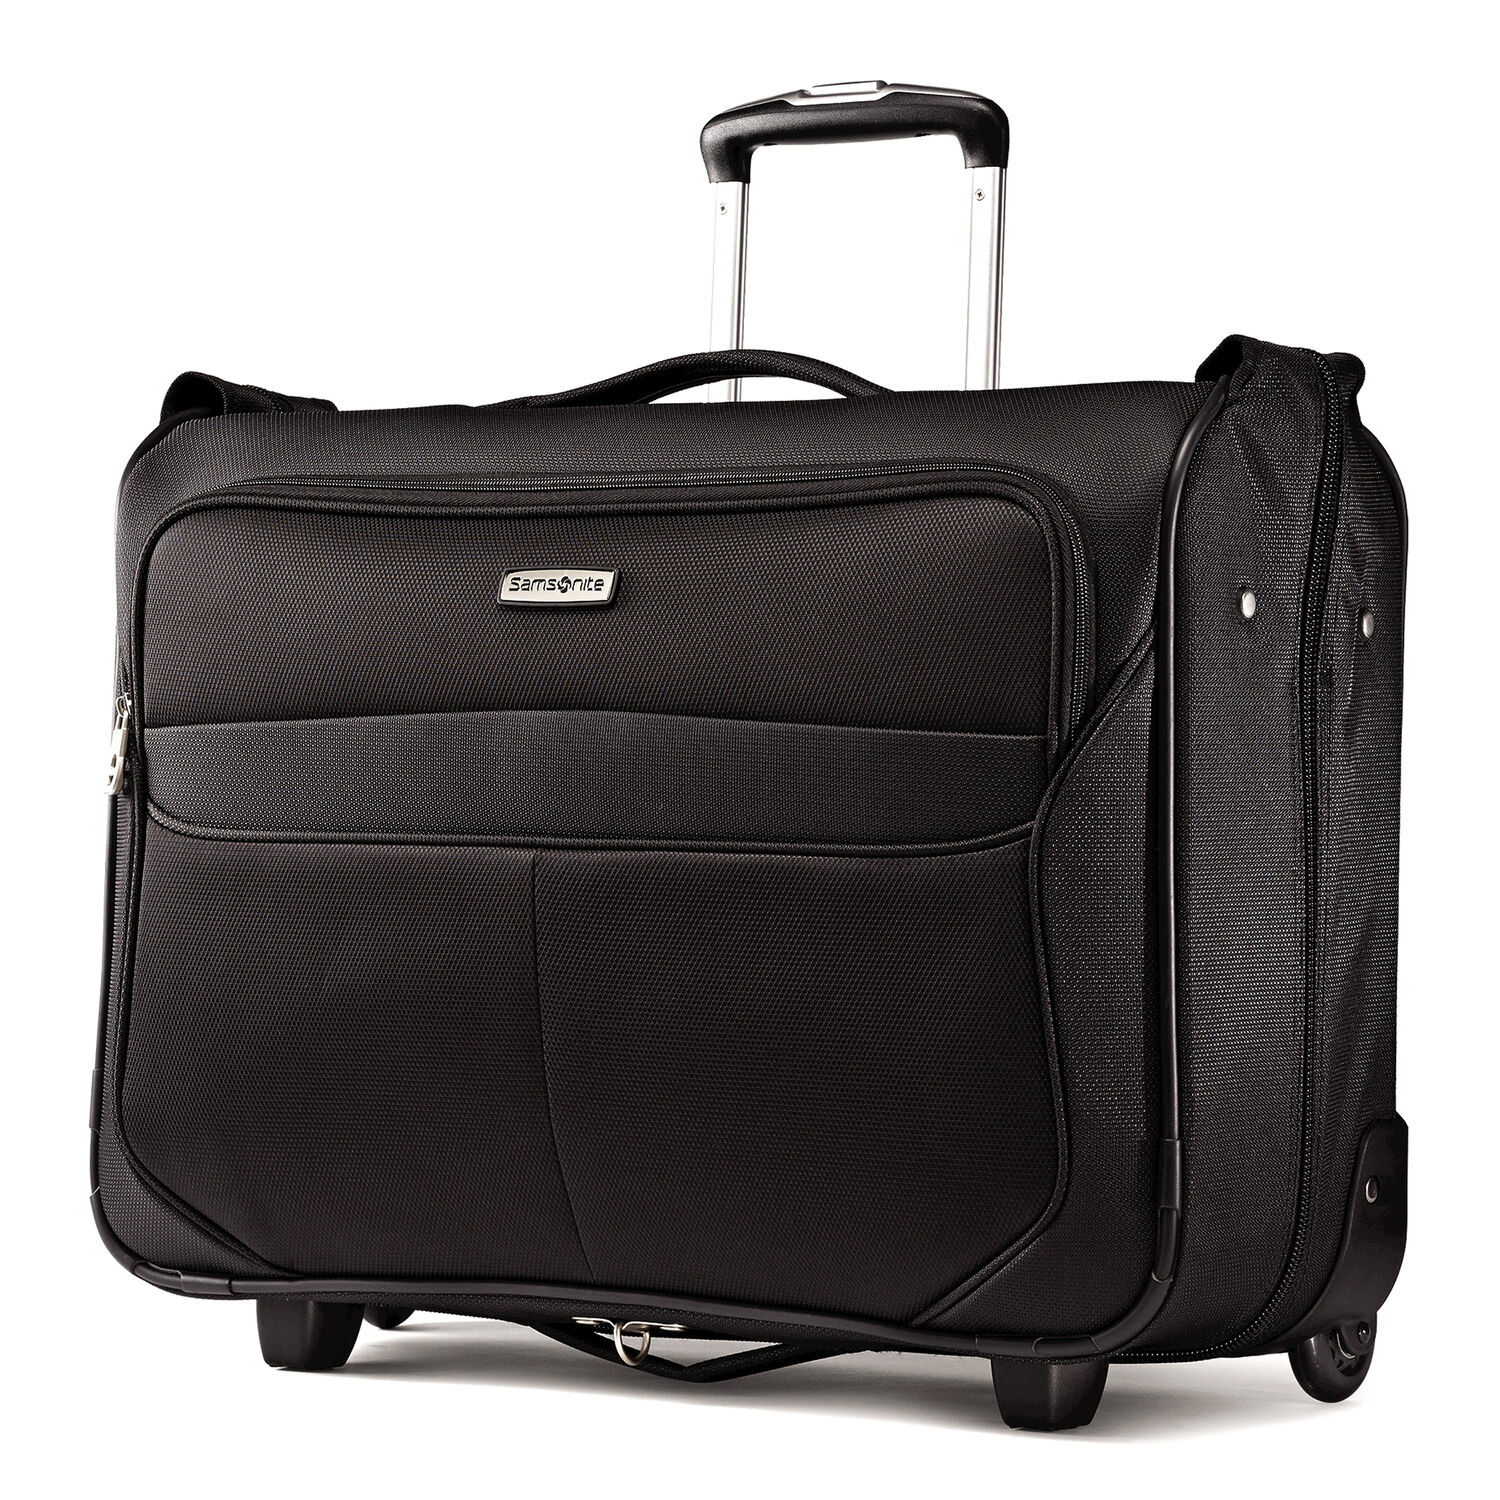 Tumi Buyer's Guide. TUMI has been manufacturing the finest bags, cases, and accessories since , with the company's commitment to quality and innovation keeping it at the forefront of the premium luggage industry.